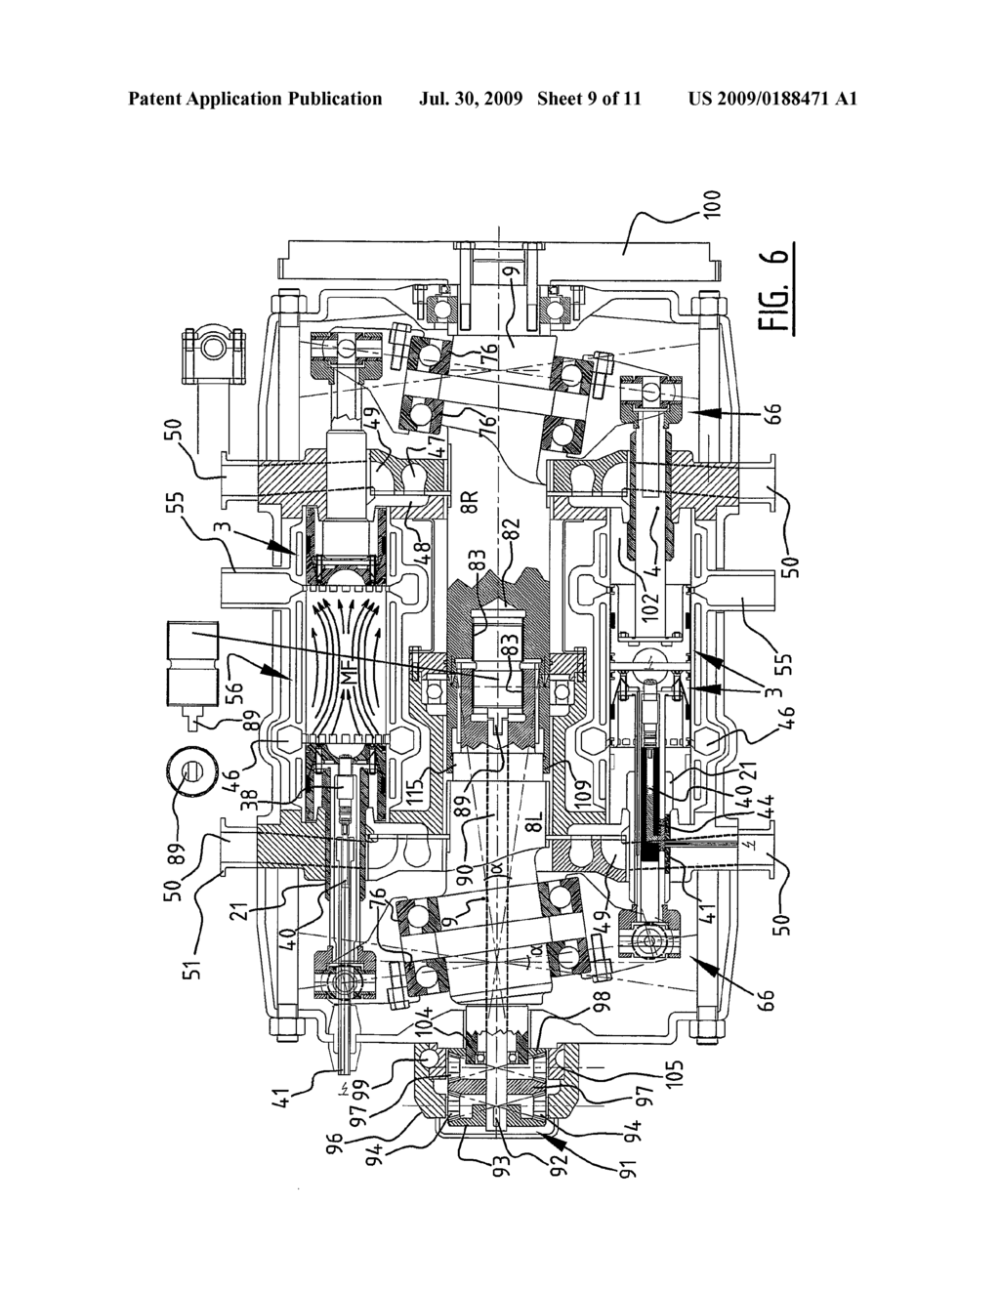 medium resolution of internal combustion engine with variable compression ratio diagram schematic and image 10